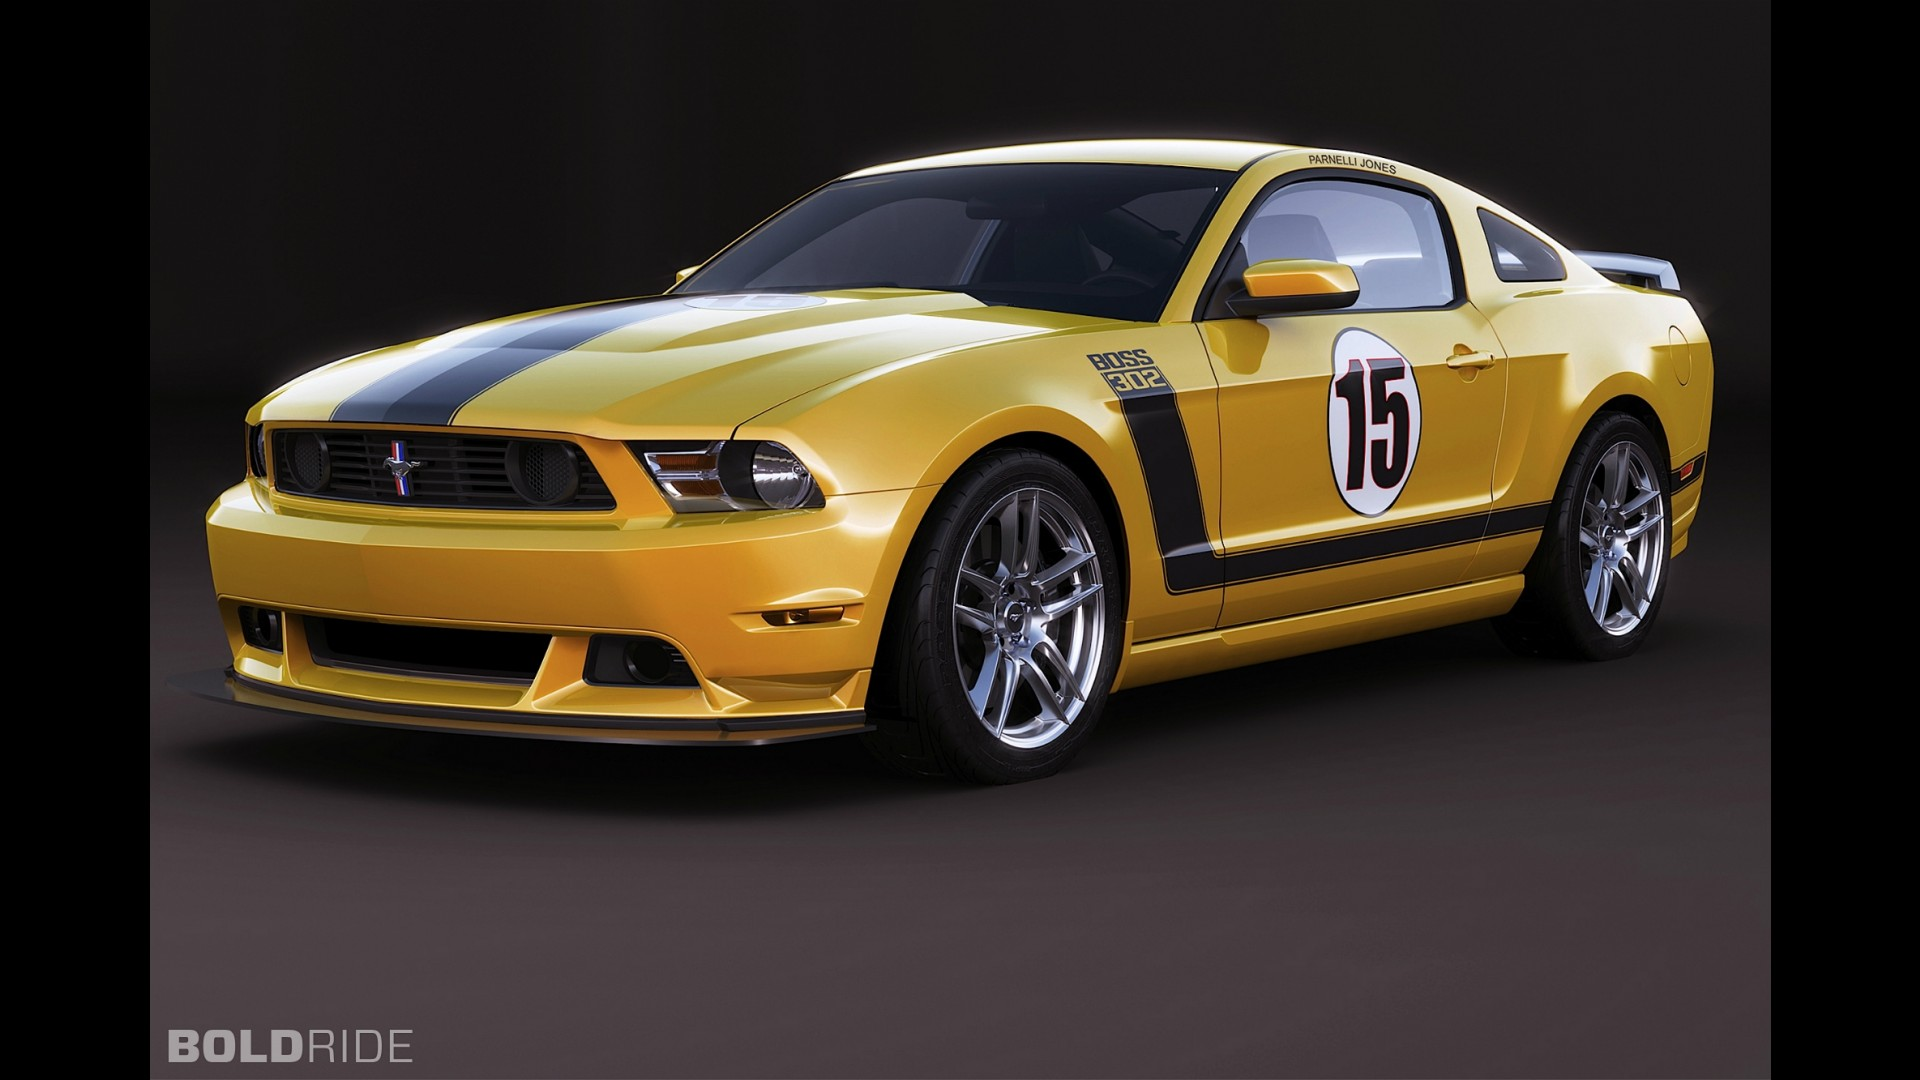 Ford Mustang Boss 302 Laguna Seca Limited Edition